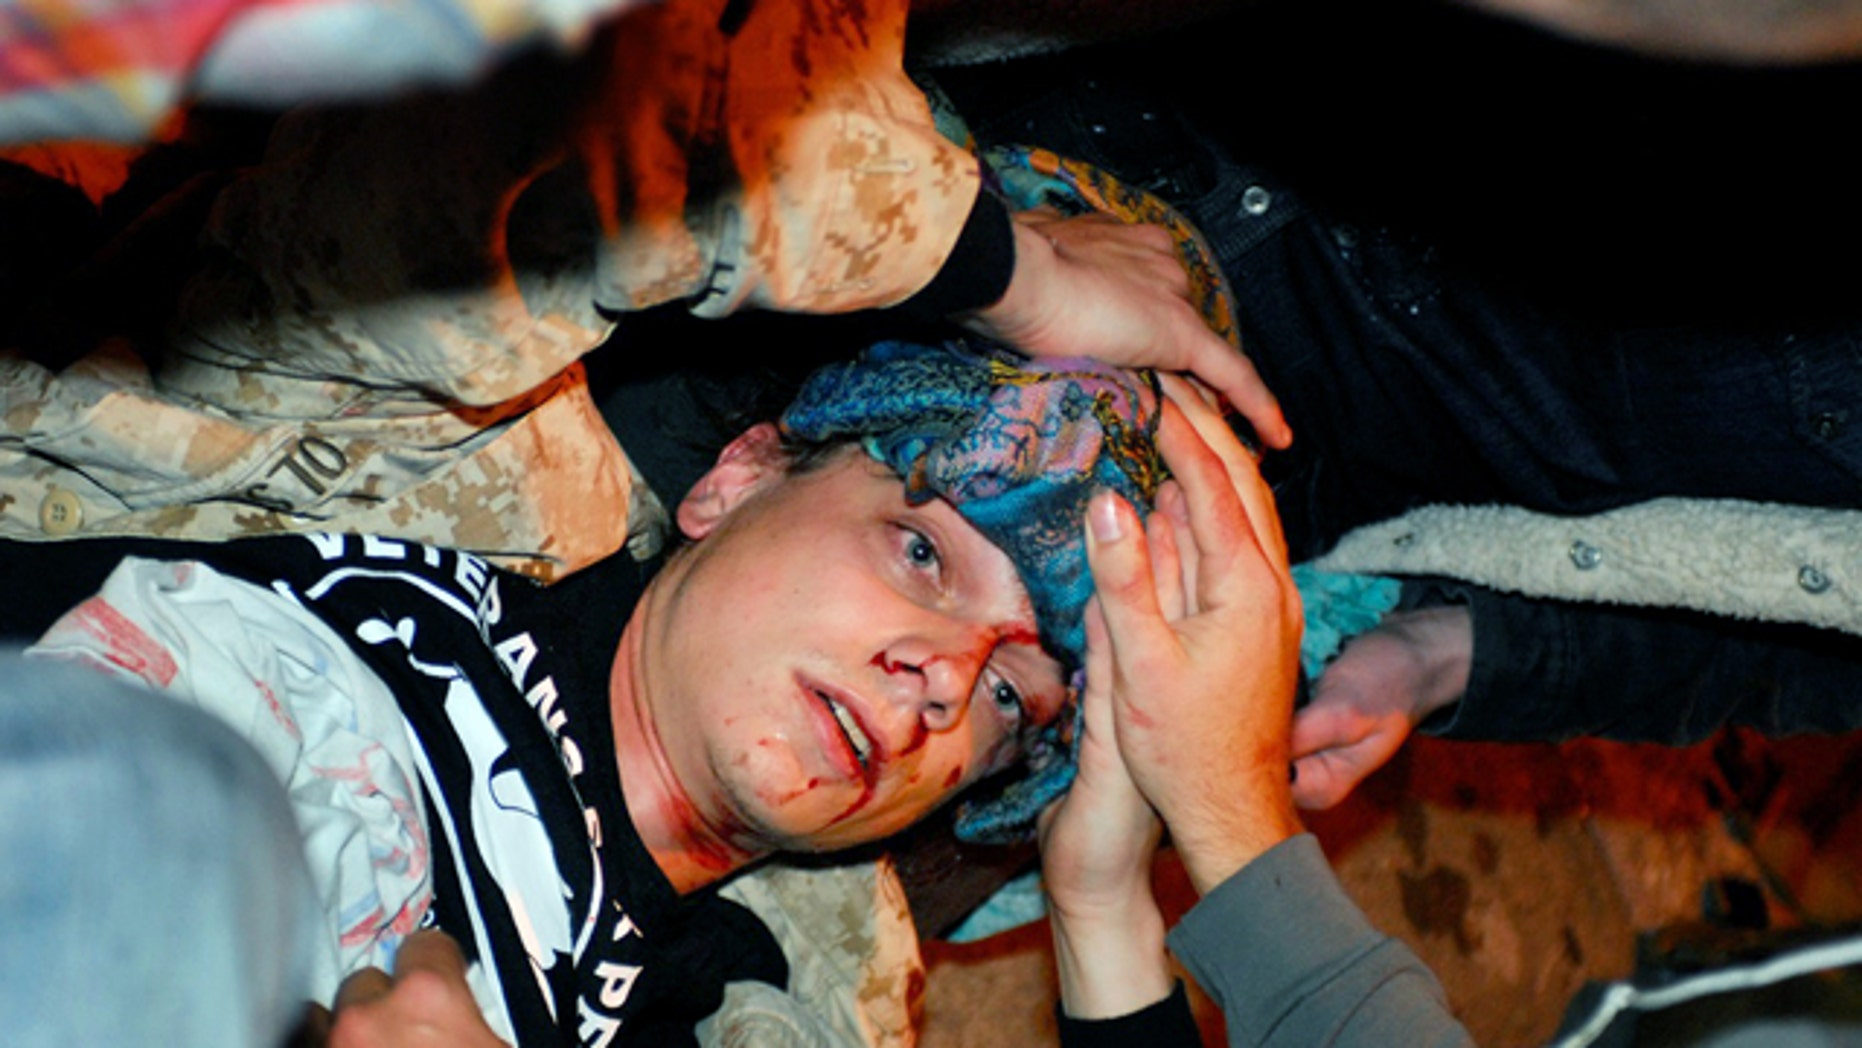 Oct. 25, 2011: 24-year-old Iraq War veteran Scott Olsen lays on the ground bleeding from a head wound after being struck by a by a projectile during an Occupy Wall Street protest in Oakland, Calif.